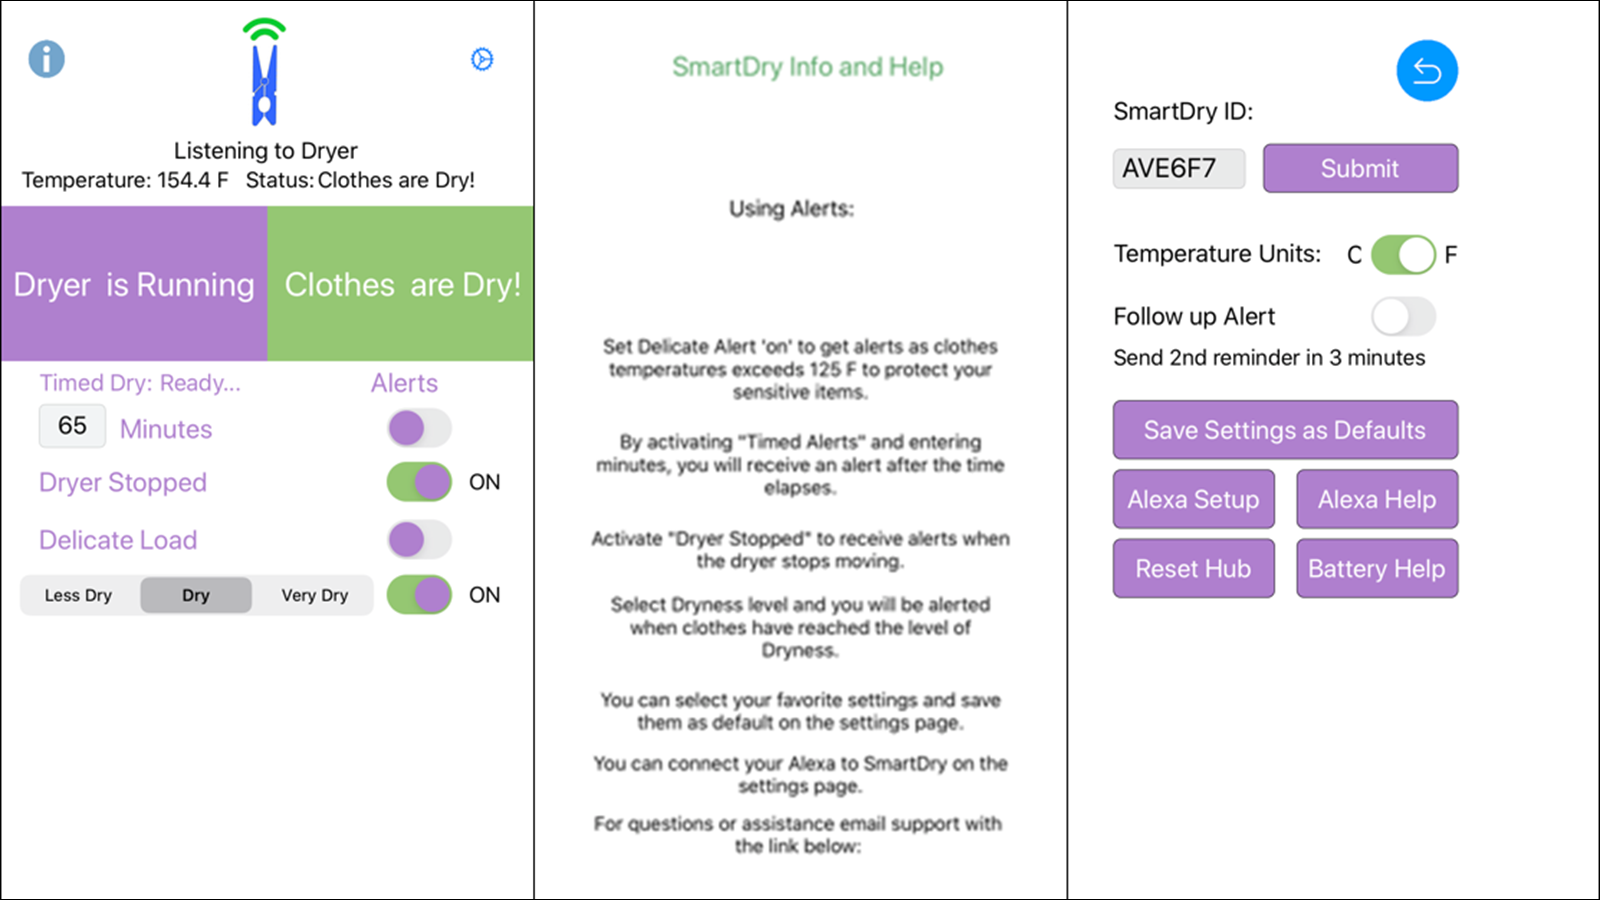 The SmartDry App on a smartphone.